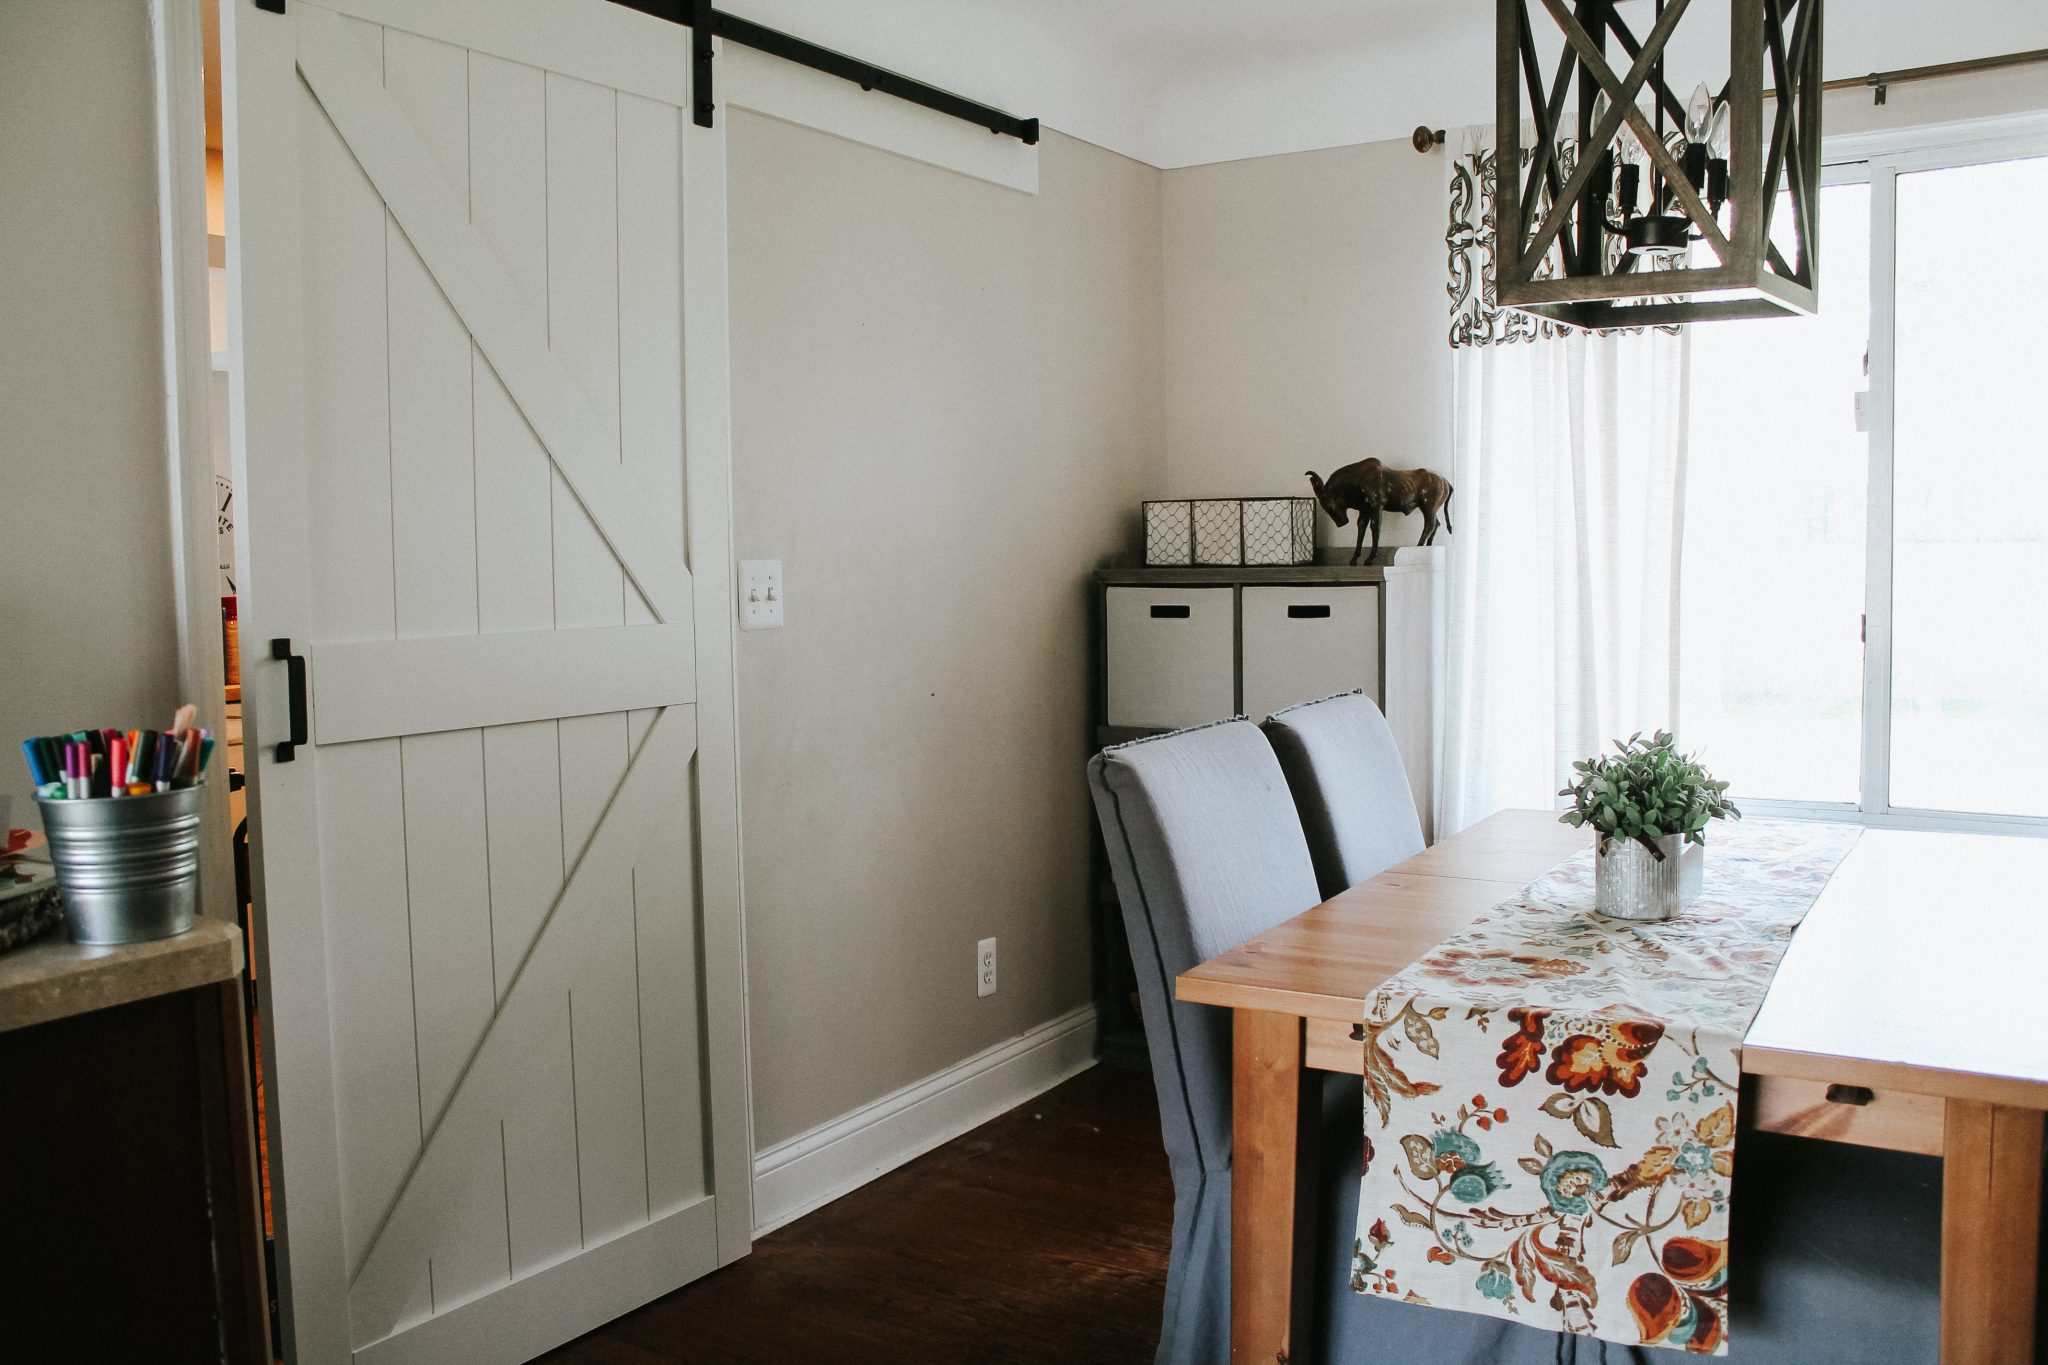 Adding a Barn Door to an Existing Doorway